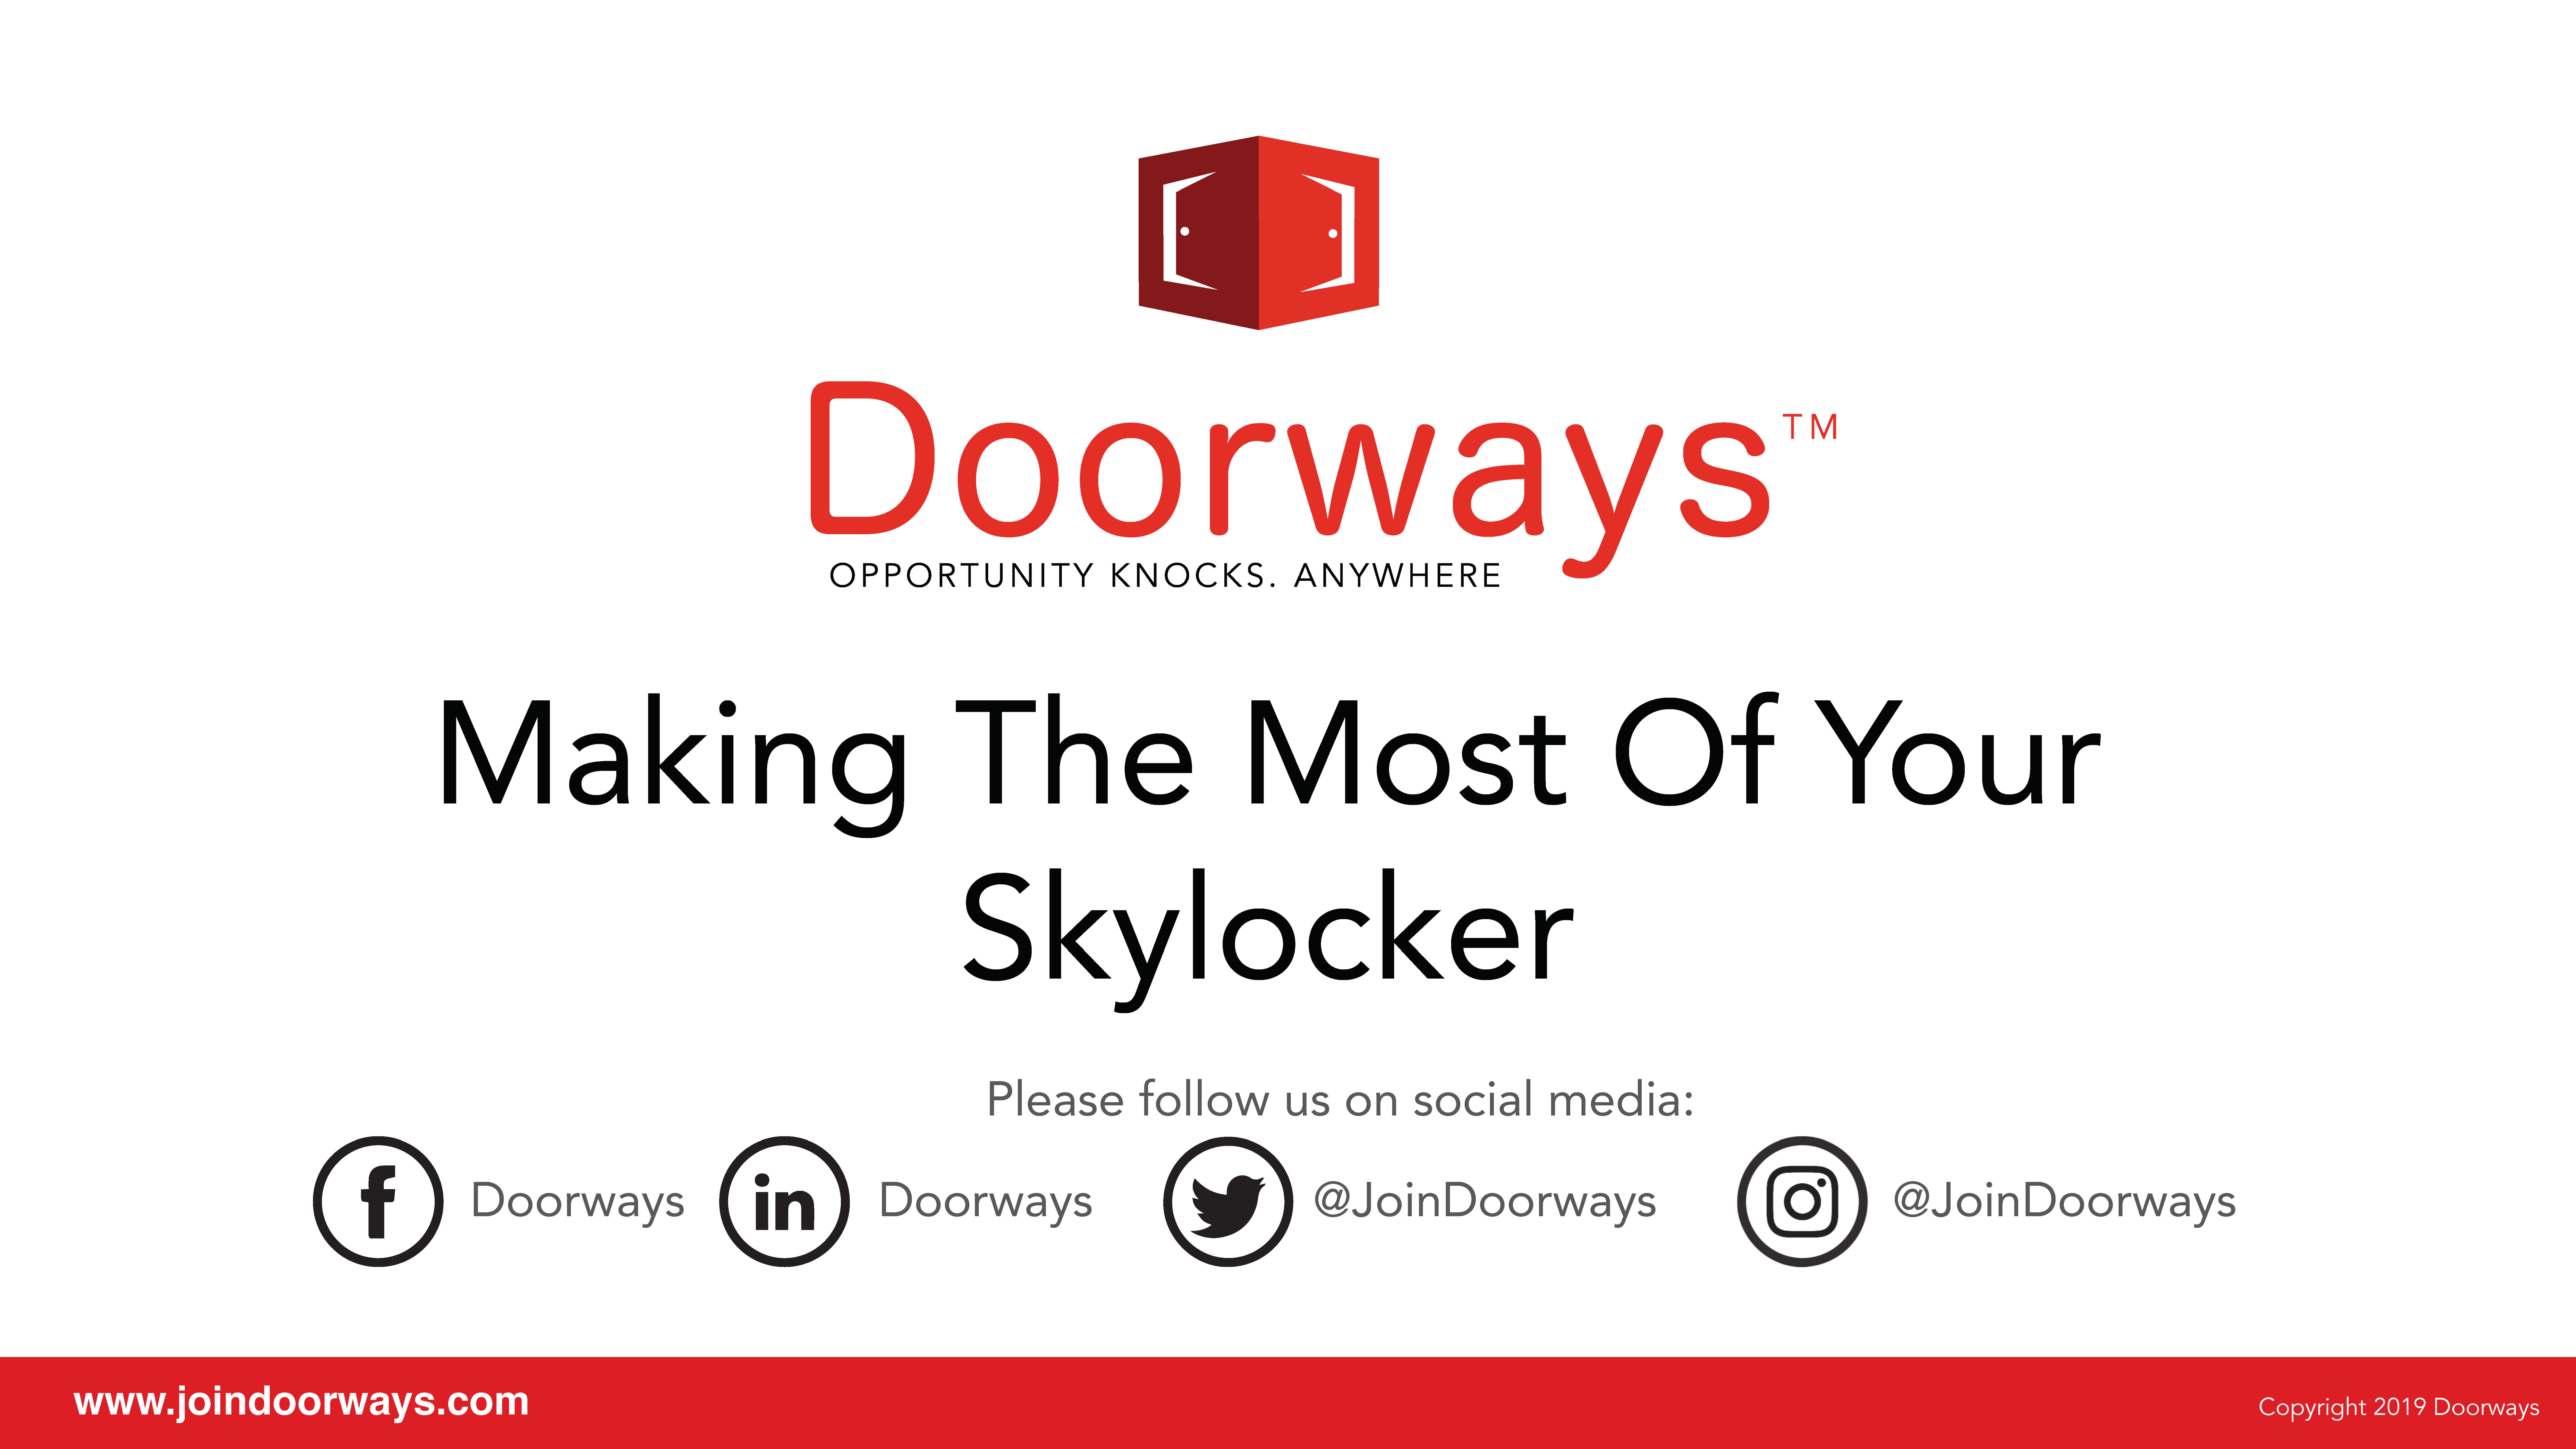 Making The Most Of Your Skylocker